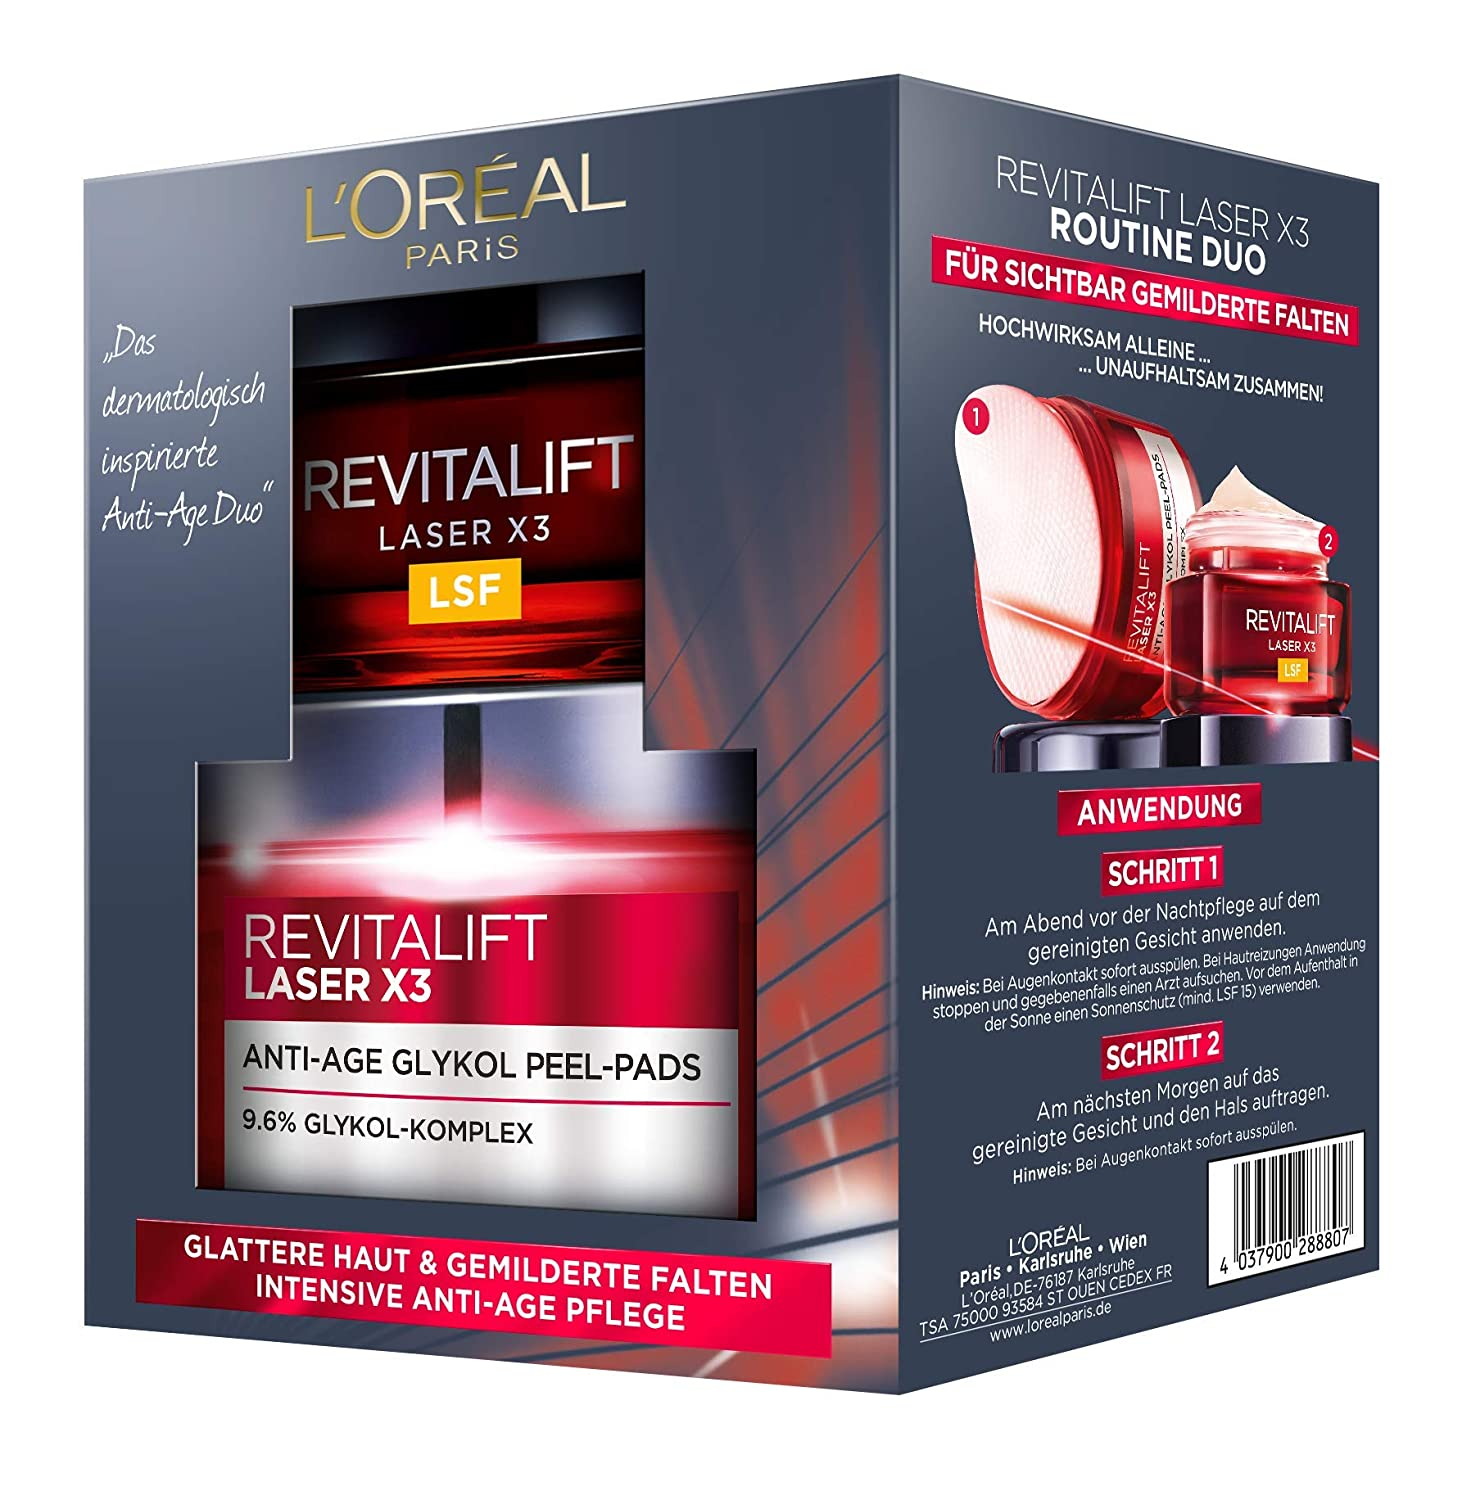 [amazon.de] L'Oréal Paris Revitalift Laser X3 Routine Duo Gesichtspflege um 9,15€